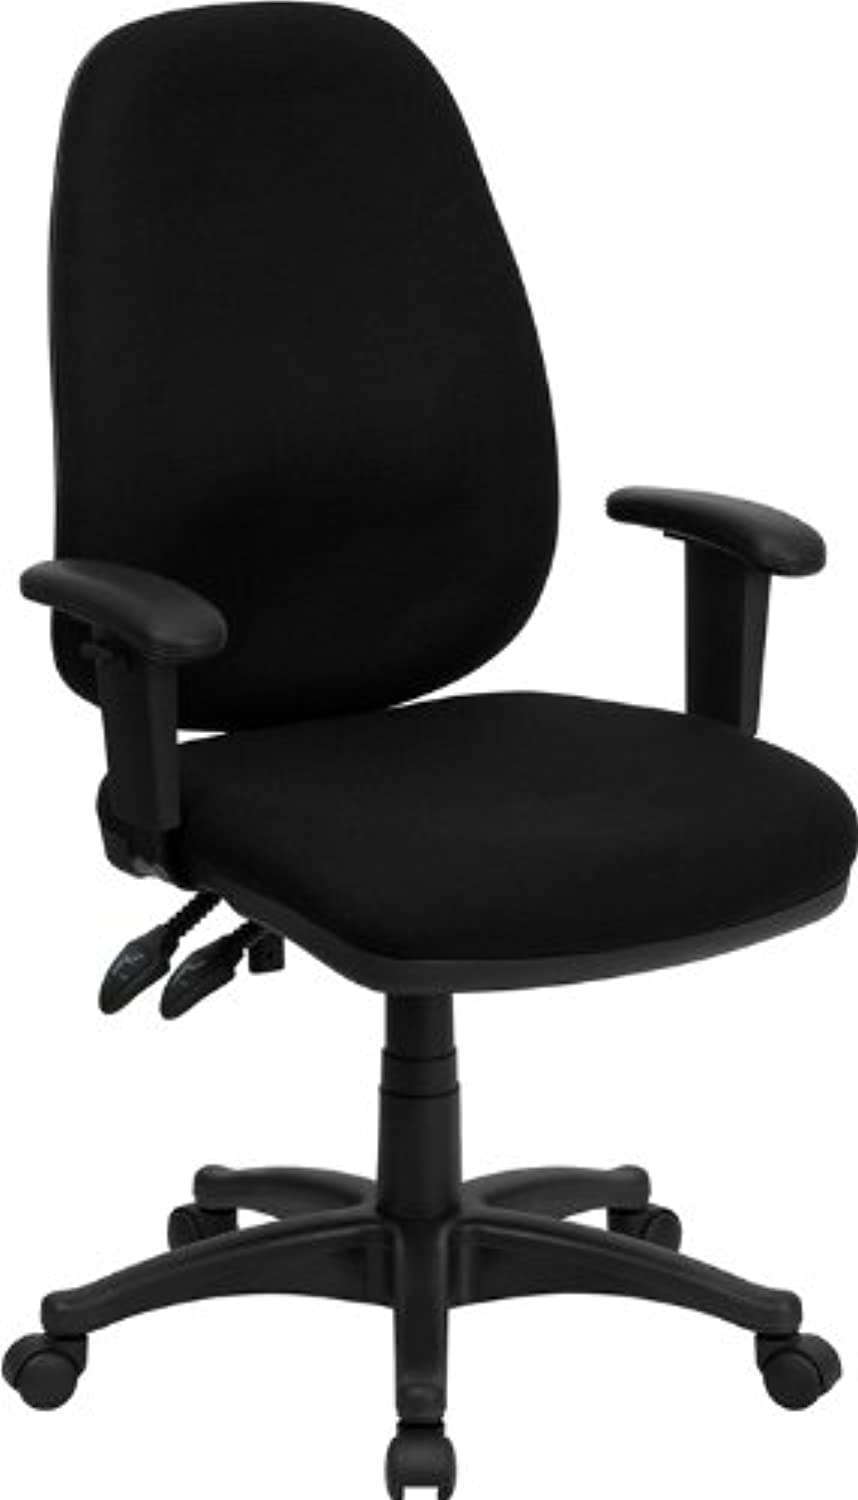 Flash Furniture BT-661-BK-GG High Back Black Fabric Ergonomic Computer Chair with Height Adjustable Arms